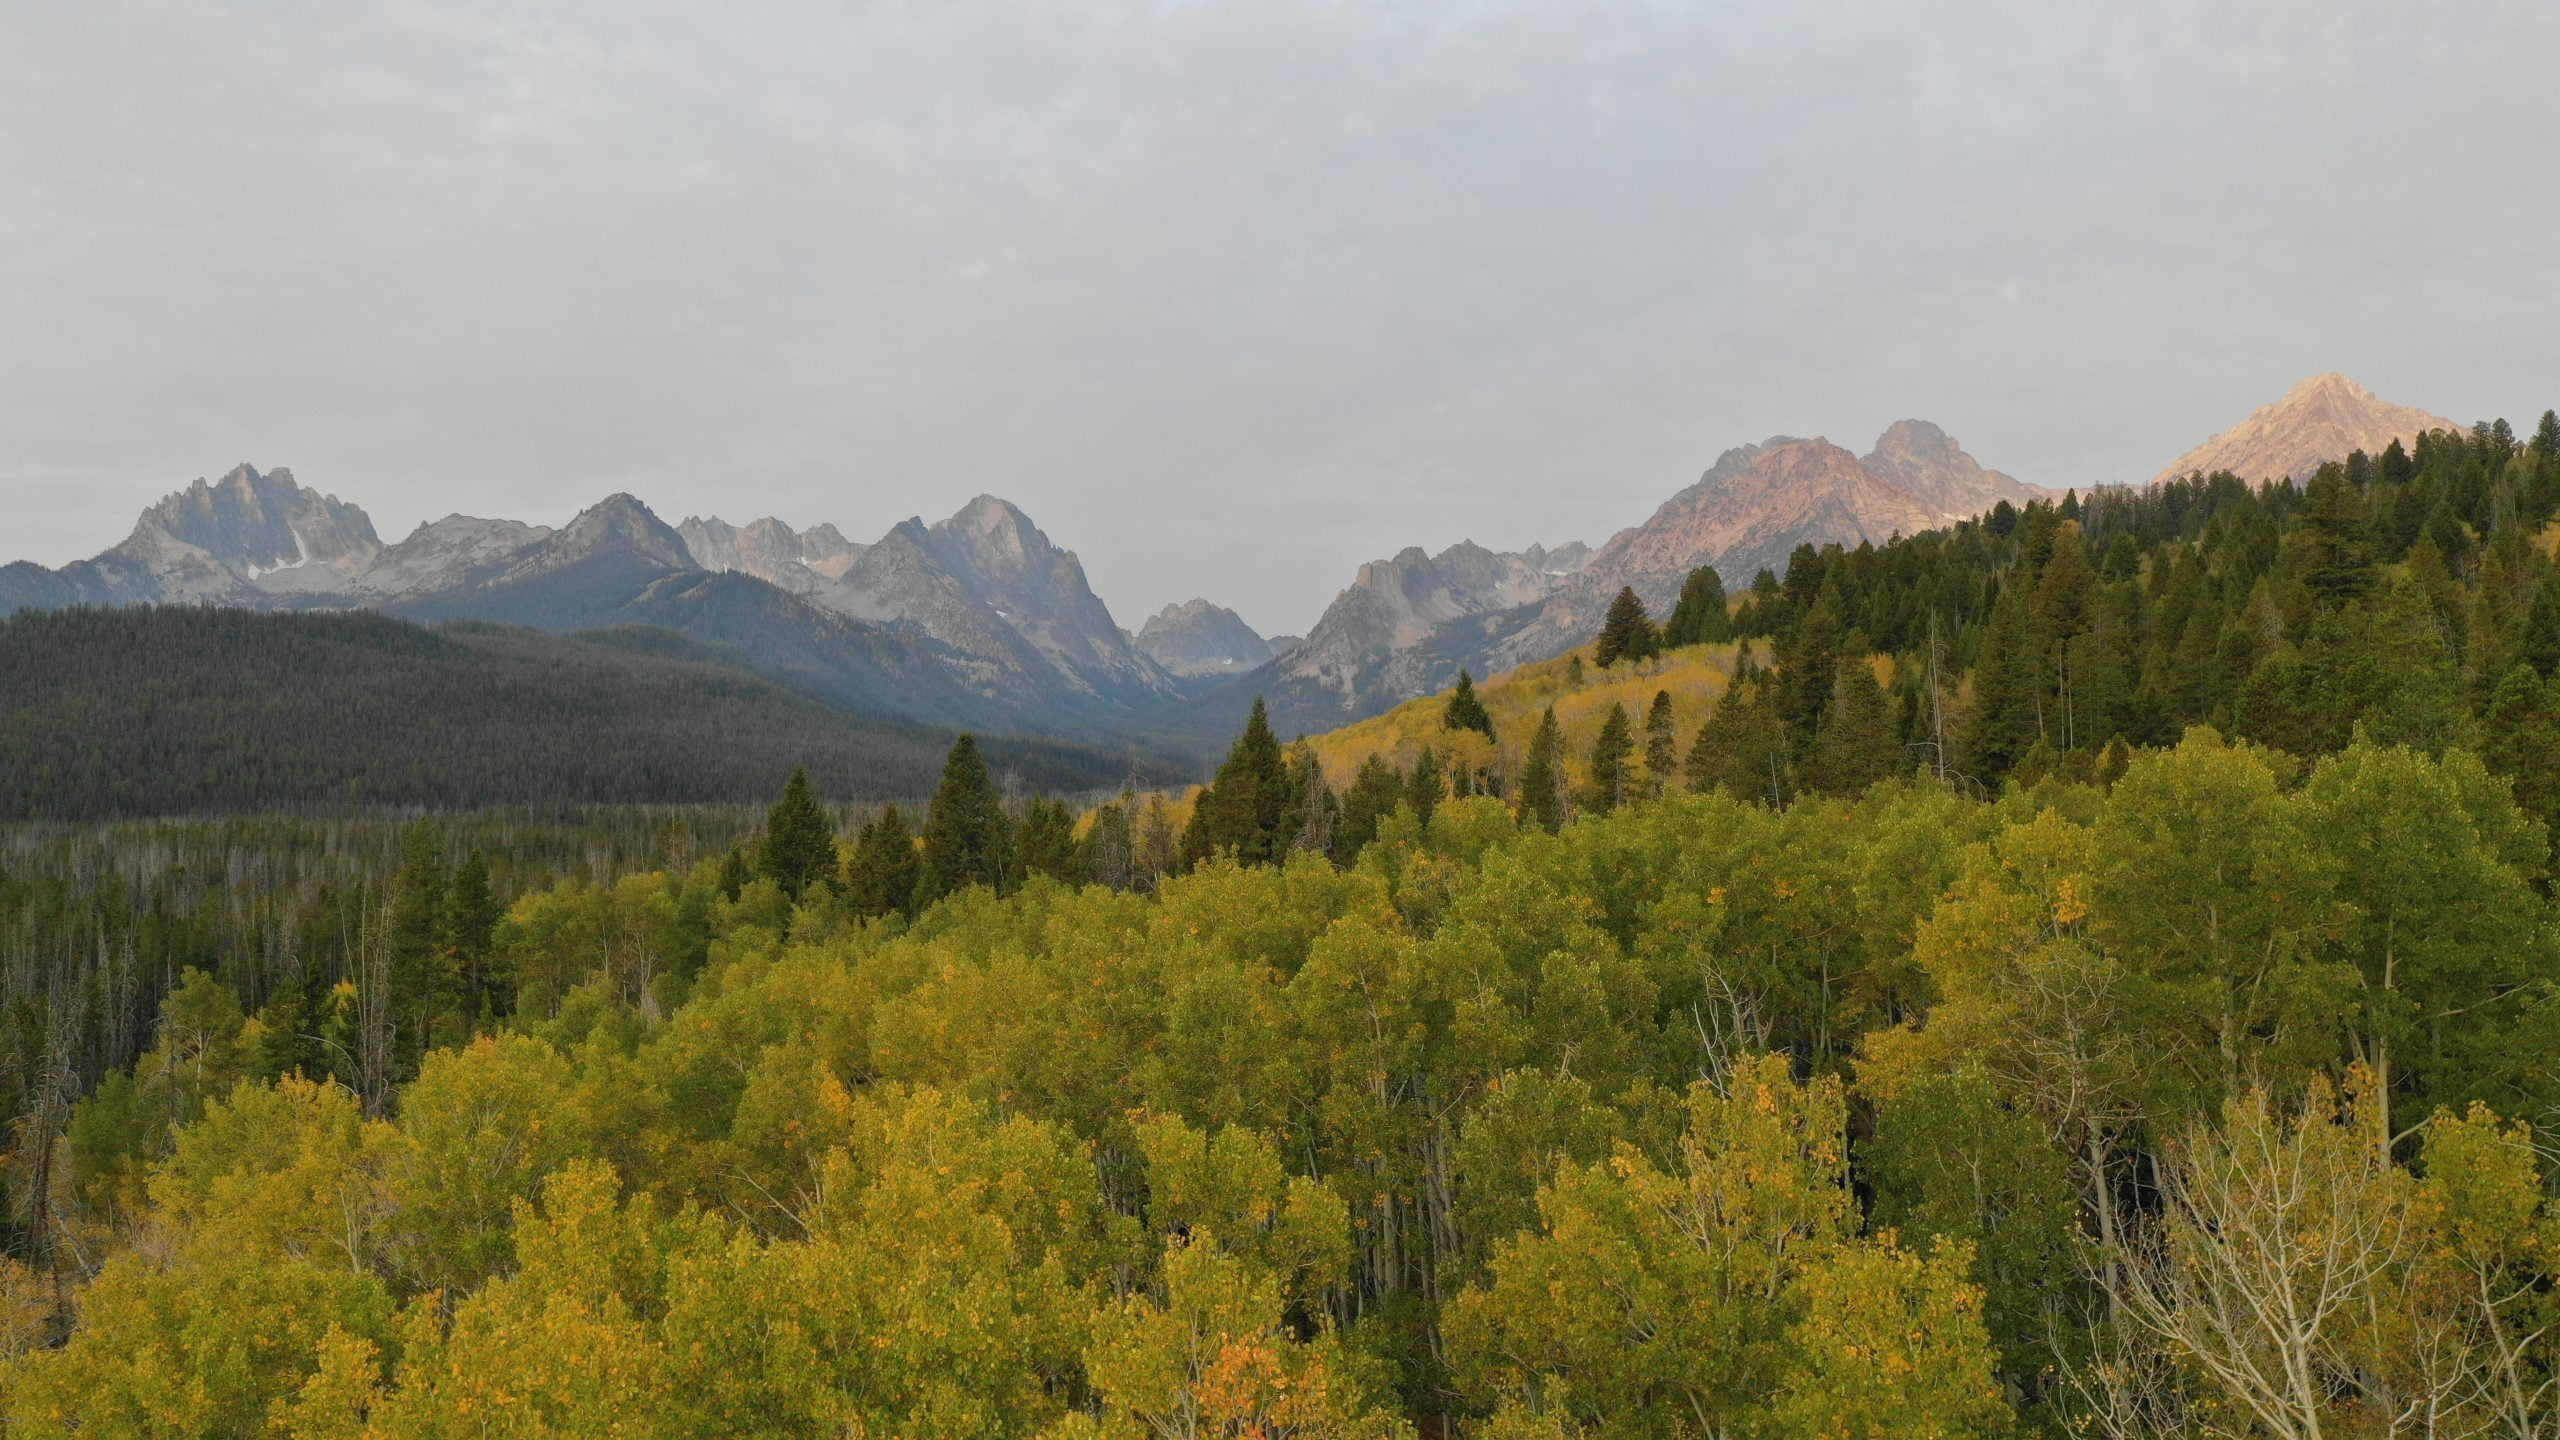 top view of mountains and forest